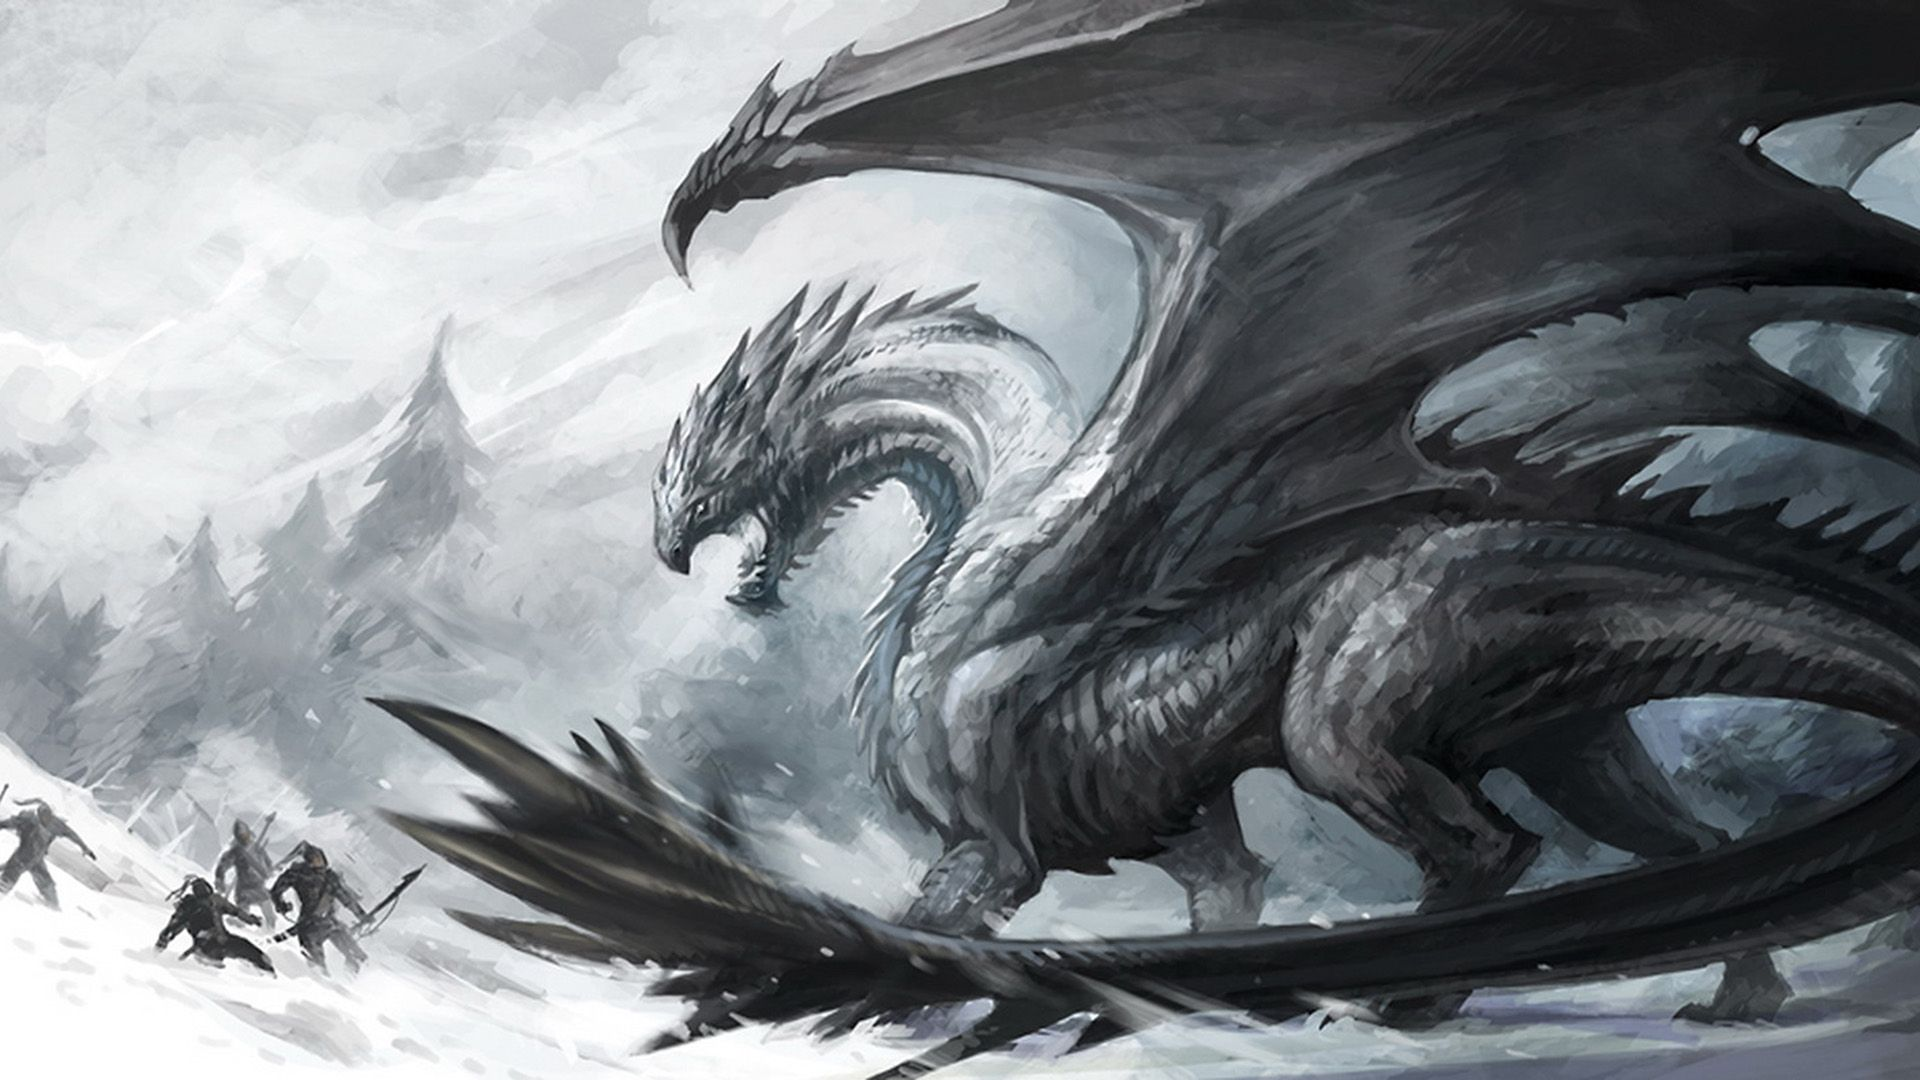 Fantasy Dragon Dark Creature Wallpaper Dragon art